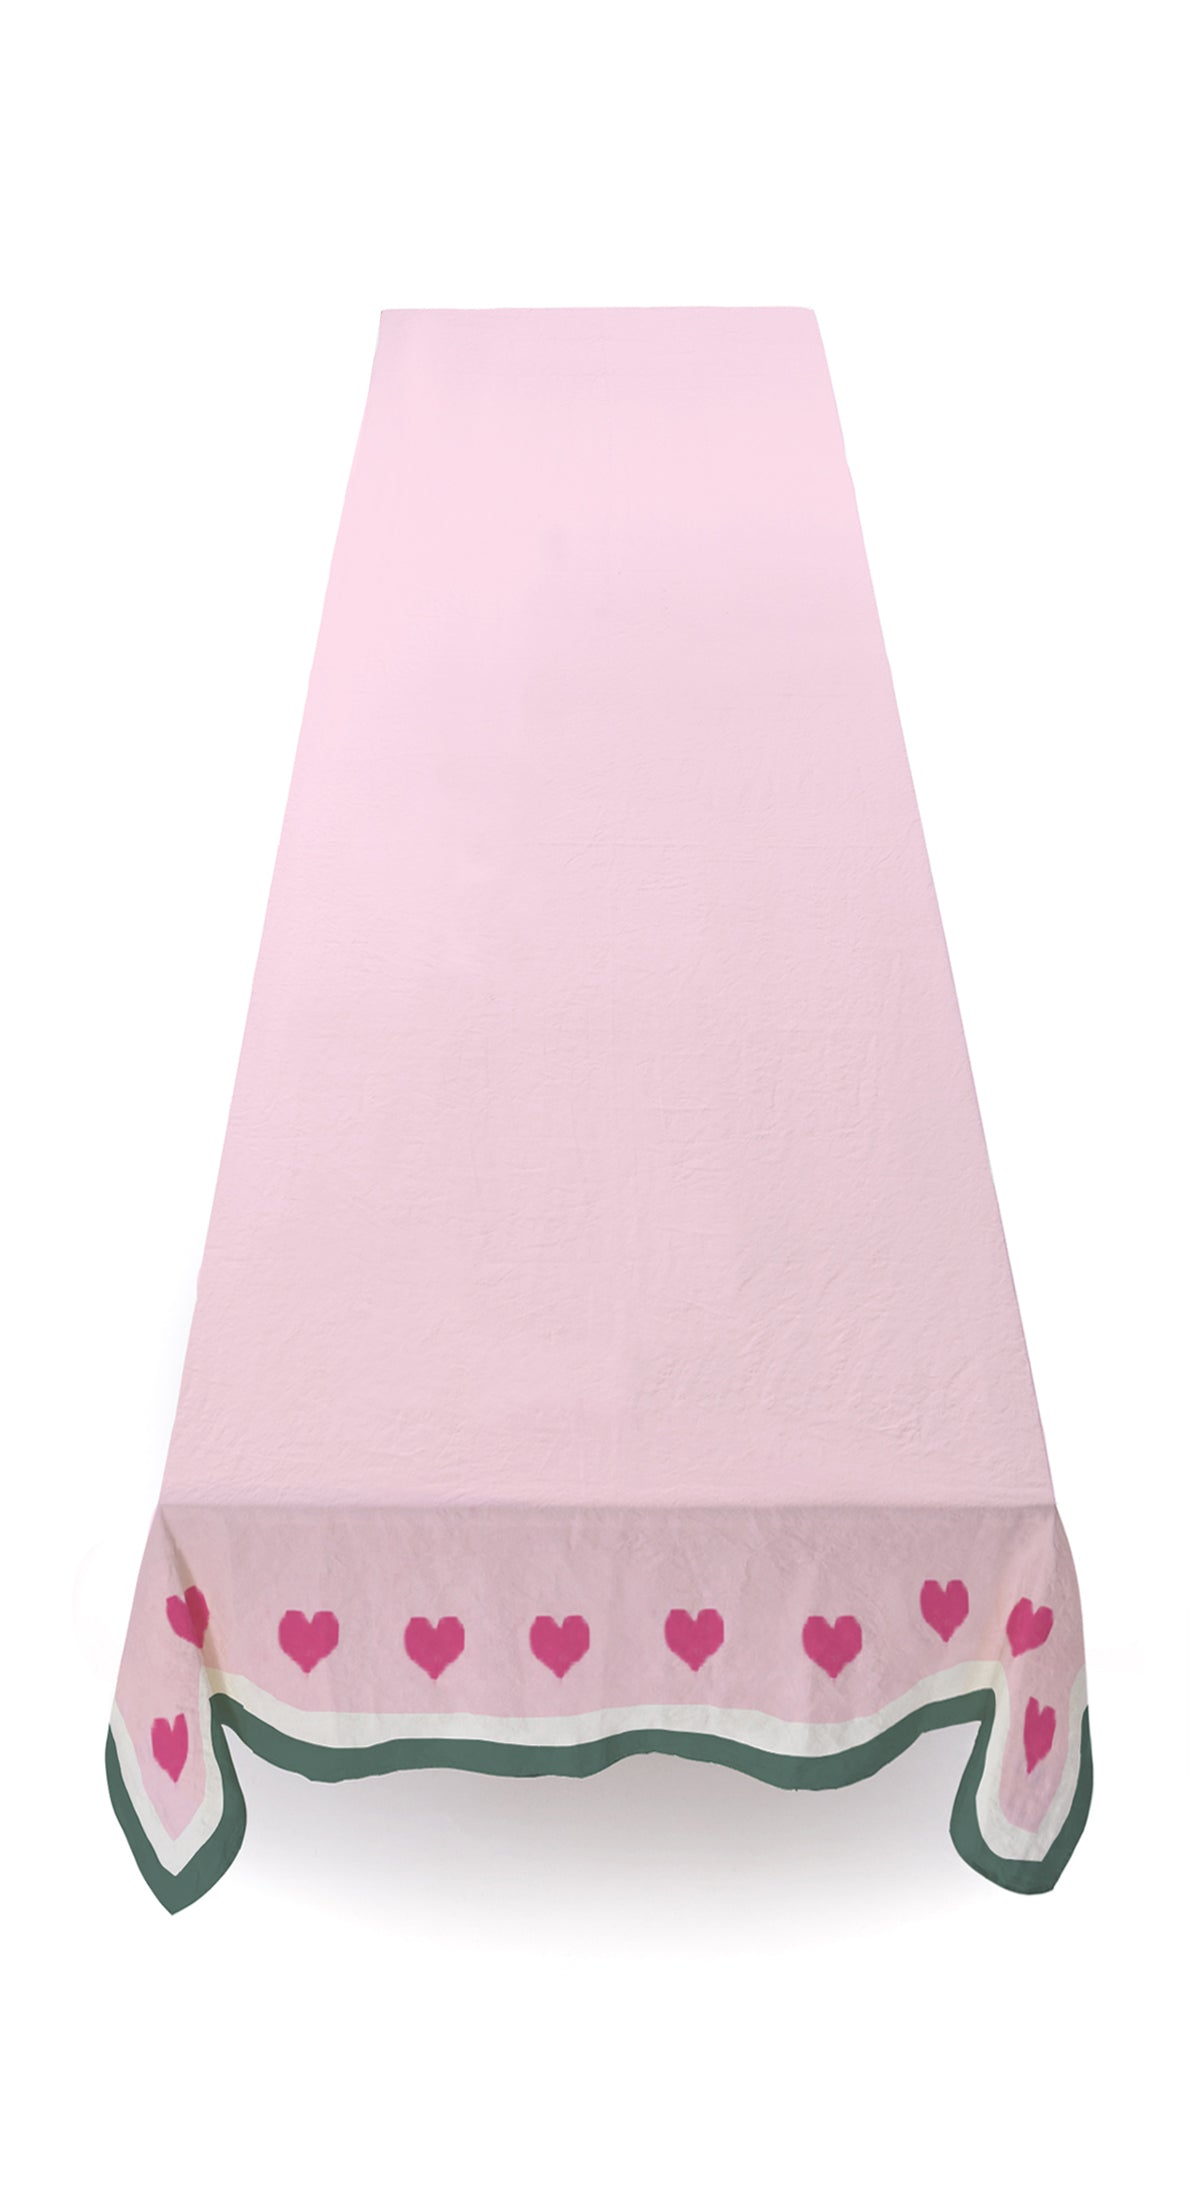 MADE TO ORDER-S&B x Lisou Heart Linen Tablecloth in Petal Pink and Forest Green